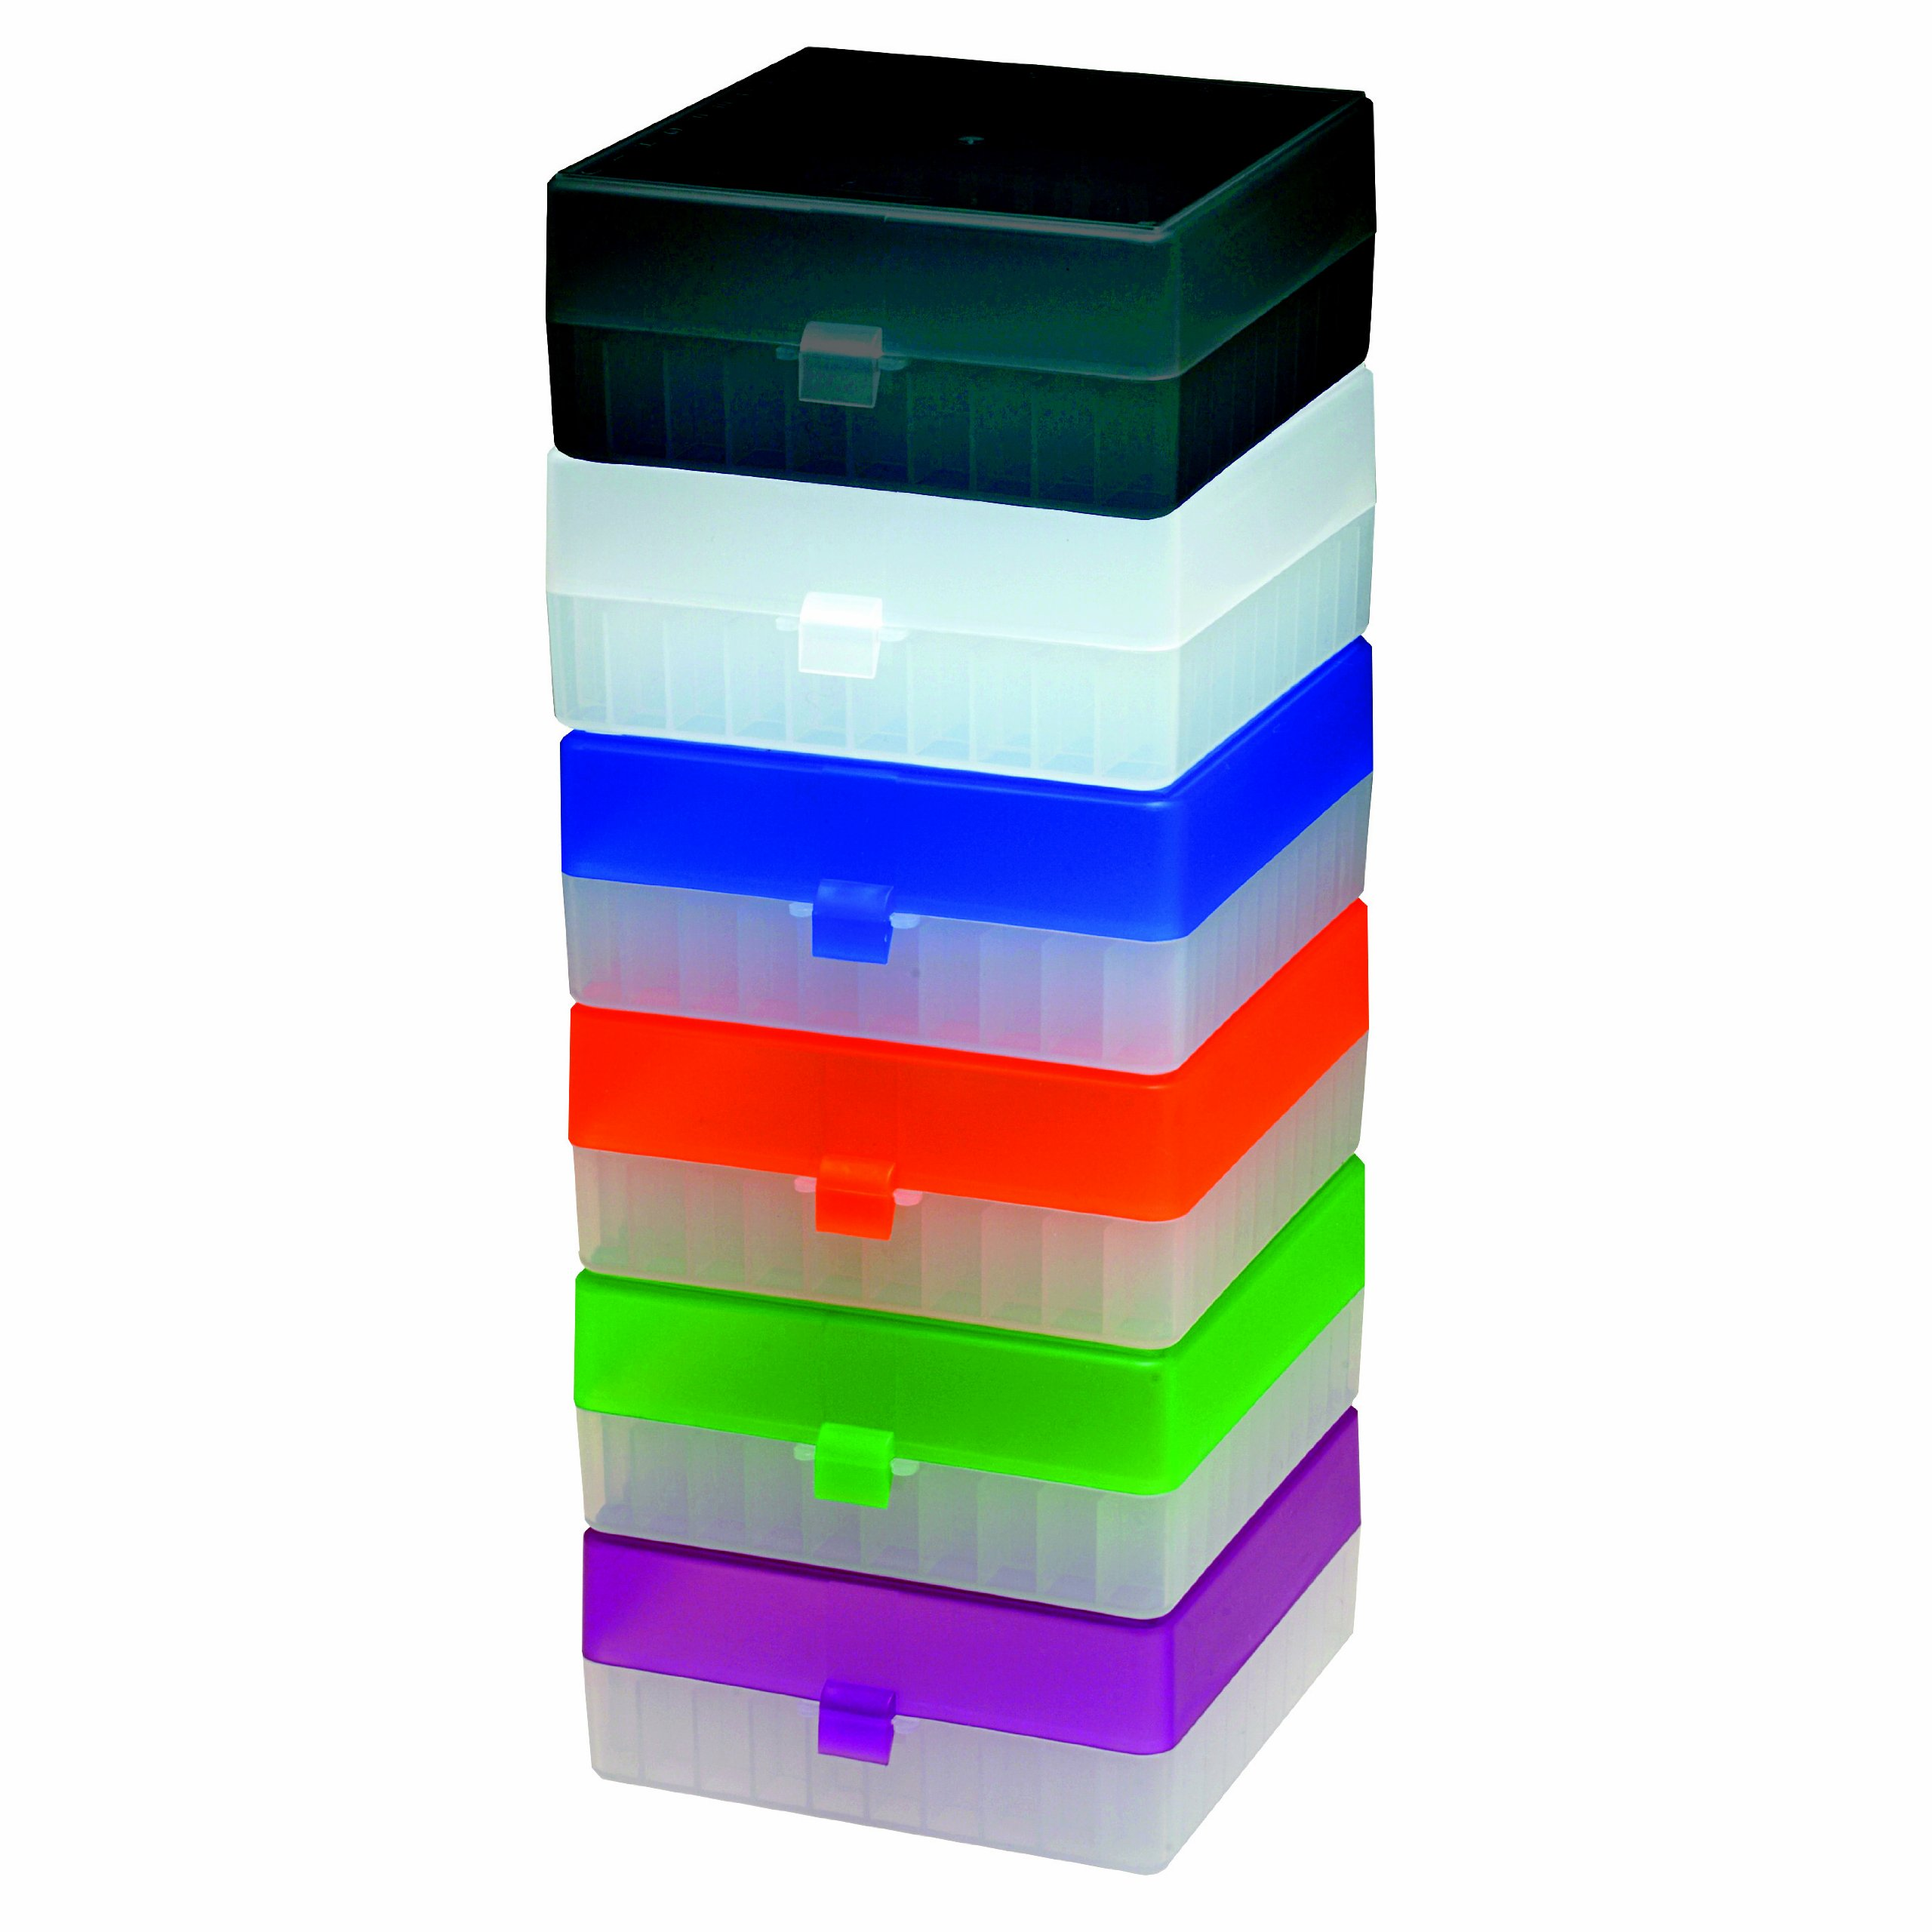 Argos R3130 Translucent Polypropylene 100 Place Microcentrifuge Tube Cryogenic Storage Box with Assorted Color Lids for 0.5, 1.5 and 2.0mL Microcentrifuge Tubes (Pack of 5) by Argos Technologies